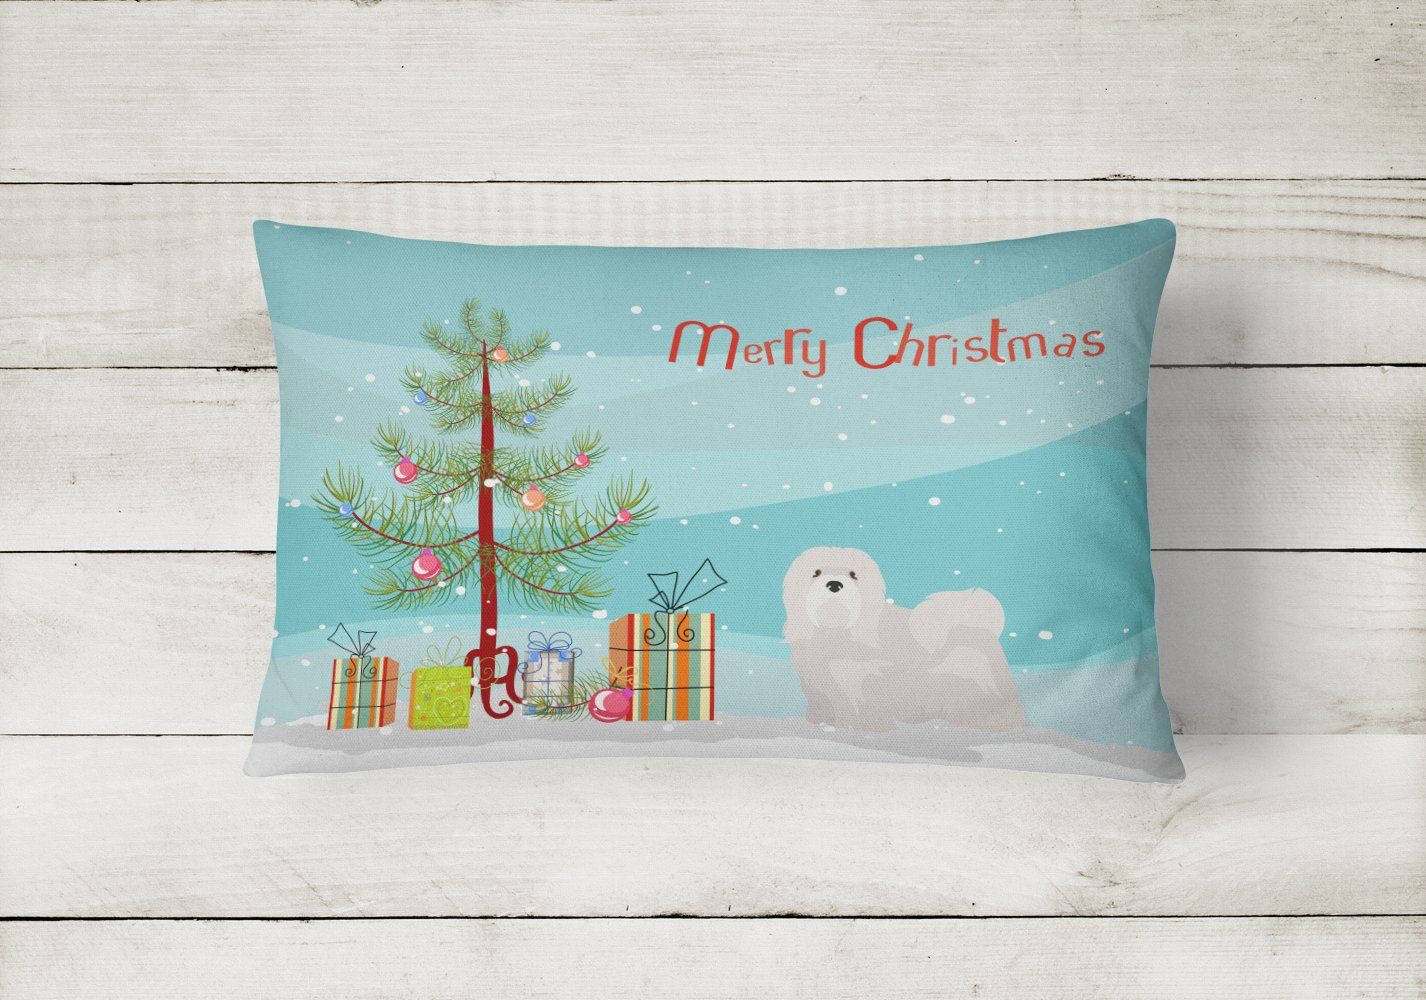 White Lhasa Apso Christmas Tree Canvas Fabric Decorative Pillow CK3469PW1216 by Caroline's Treasures